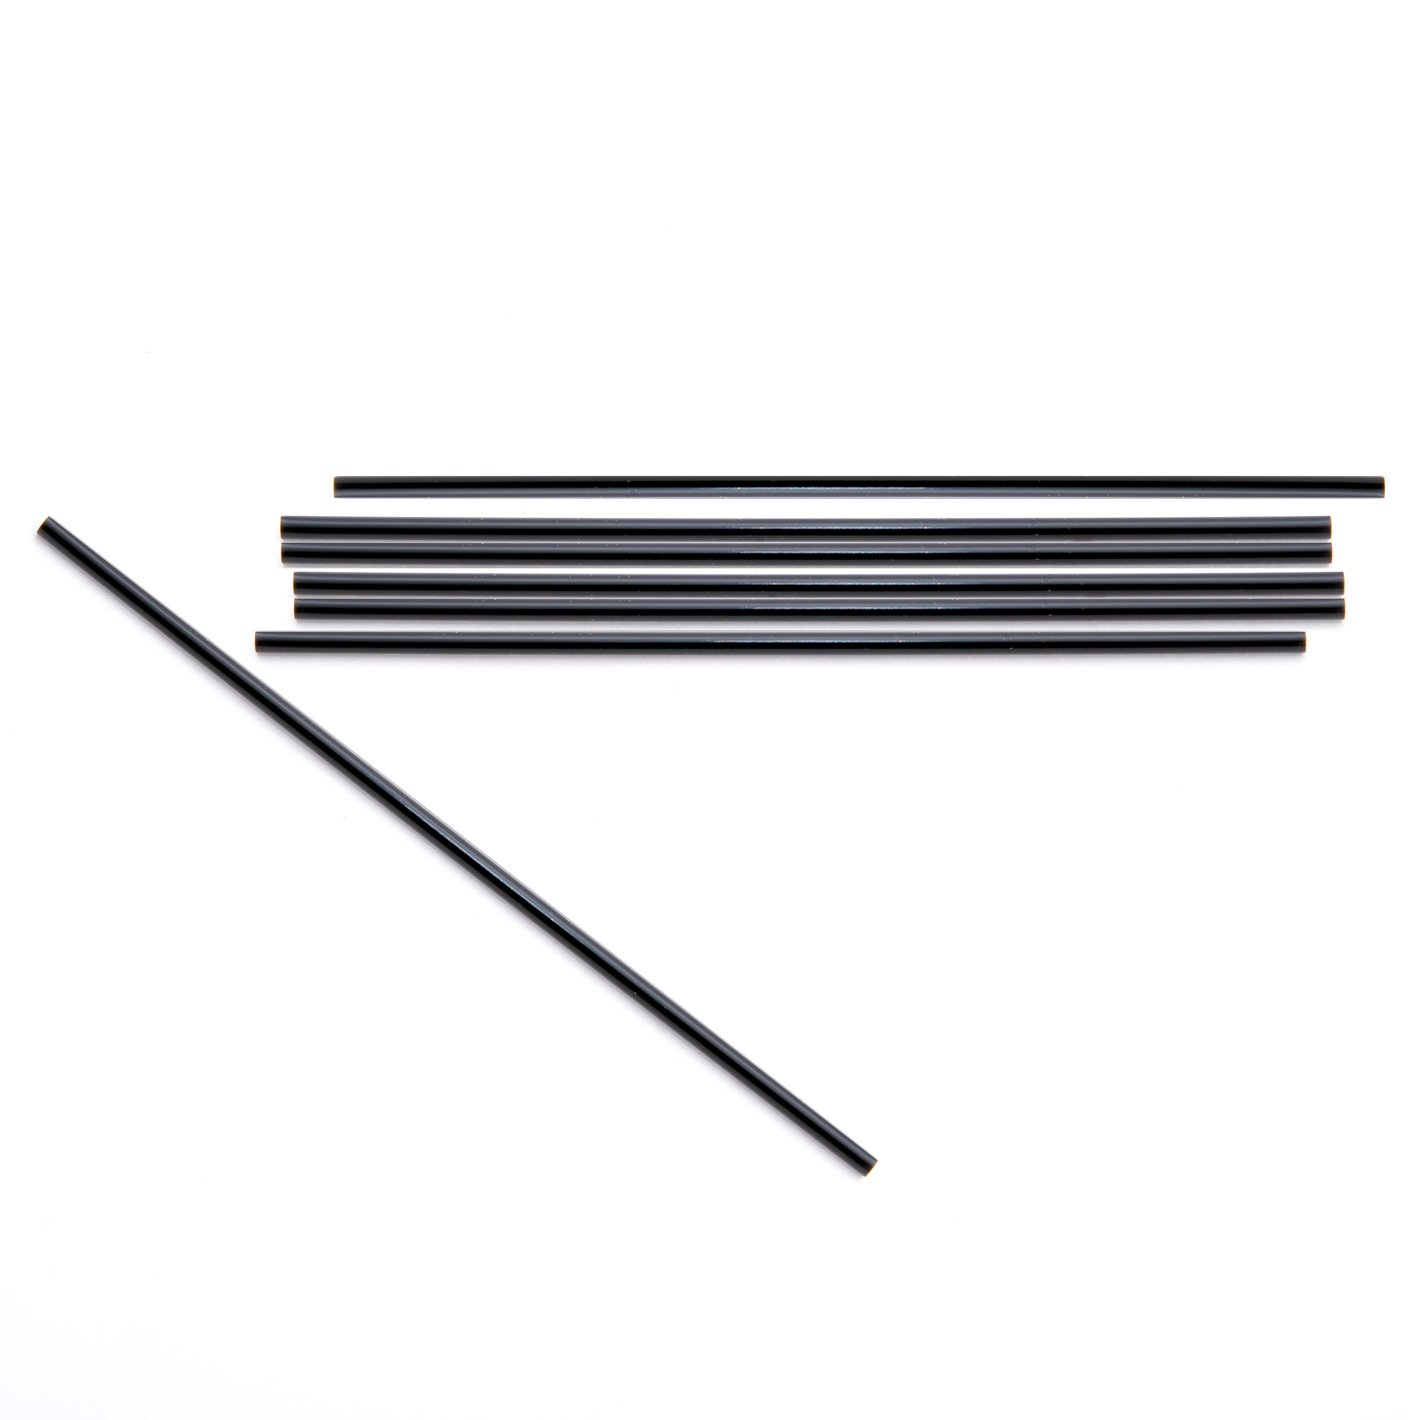 "Daxwell 5"" x 2.7mm Coffee Stirrer, Black (10 Boxes of 1,000)"